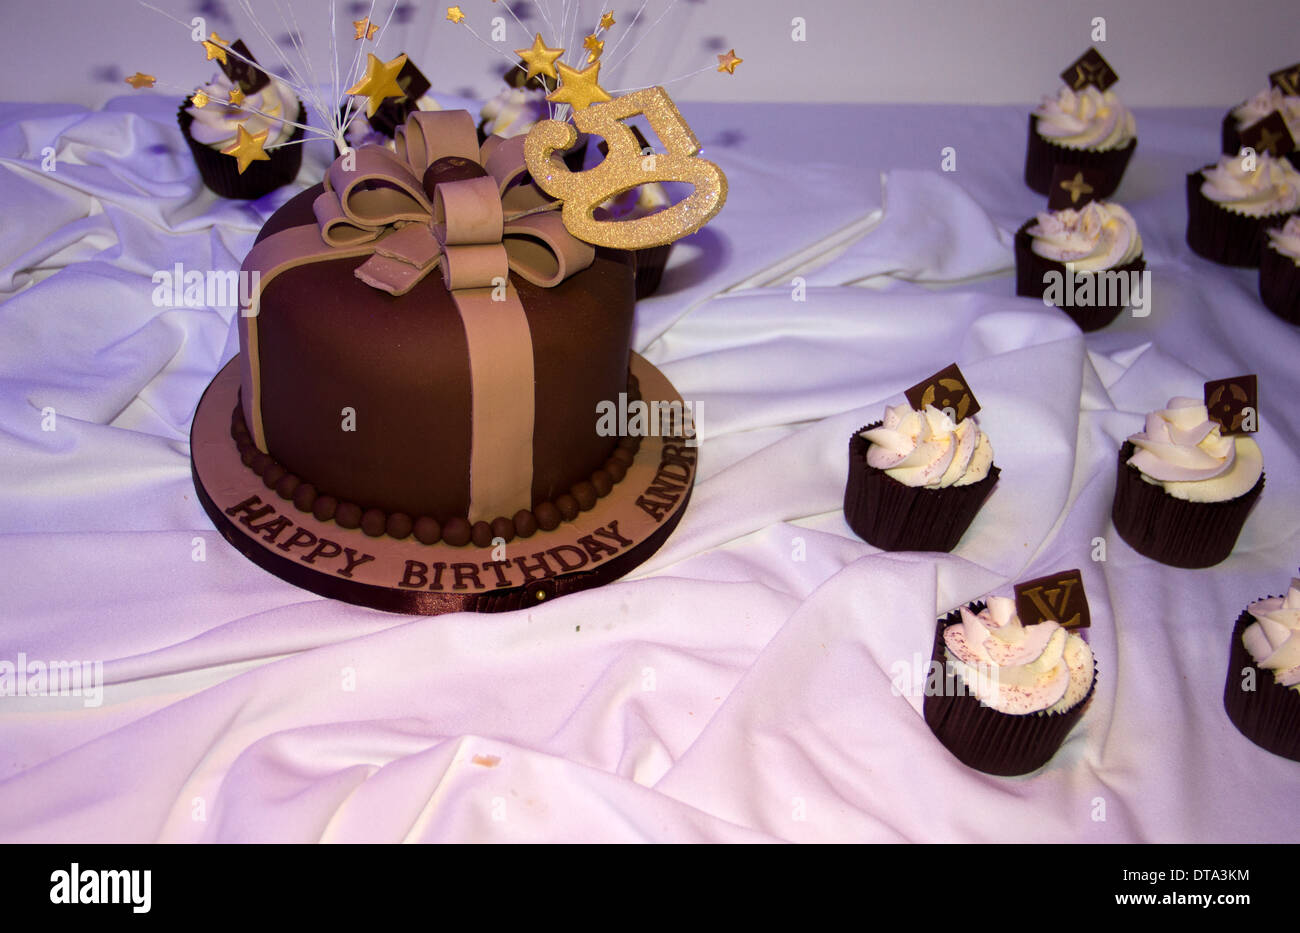 50th Cake - Stock Image